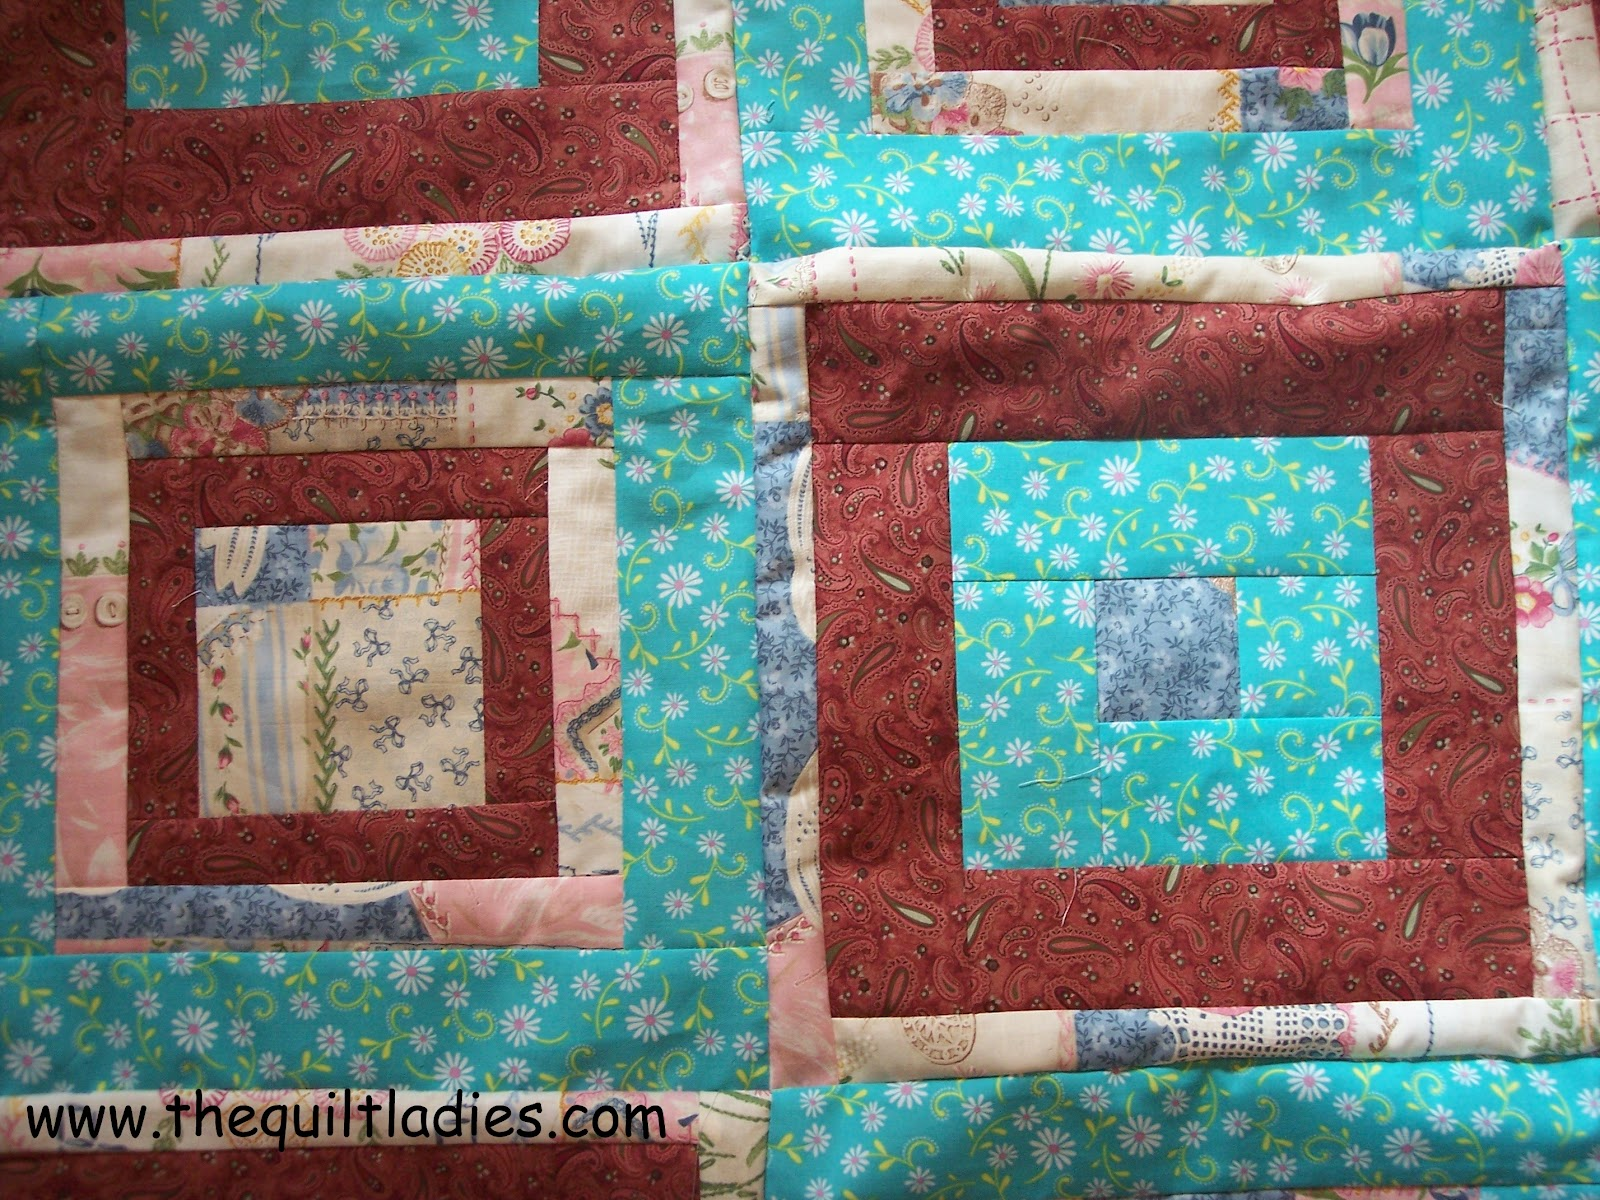 Log Cabin Patterns : The quilt ladies book collection fun fabric and log cabin